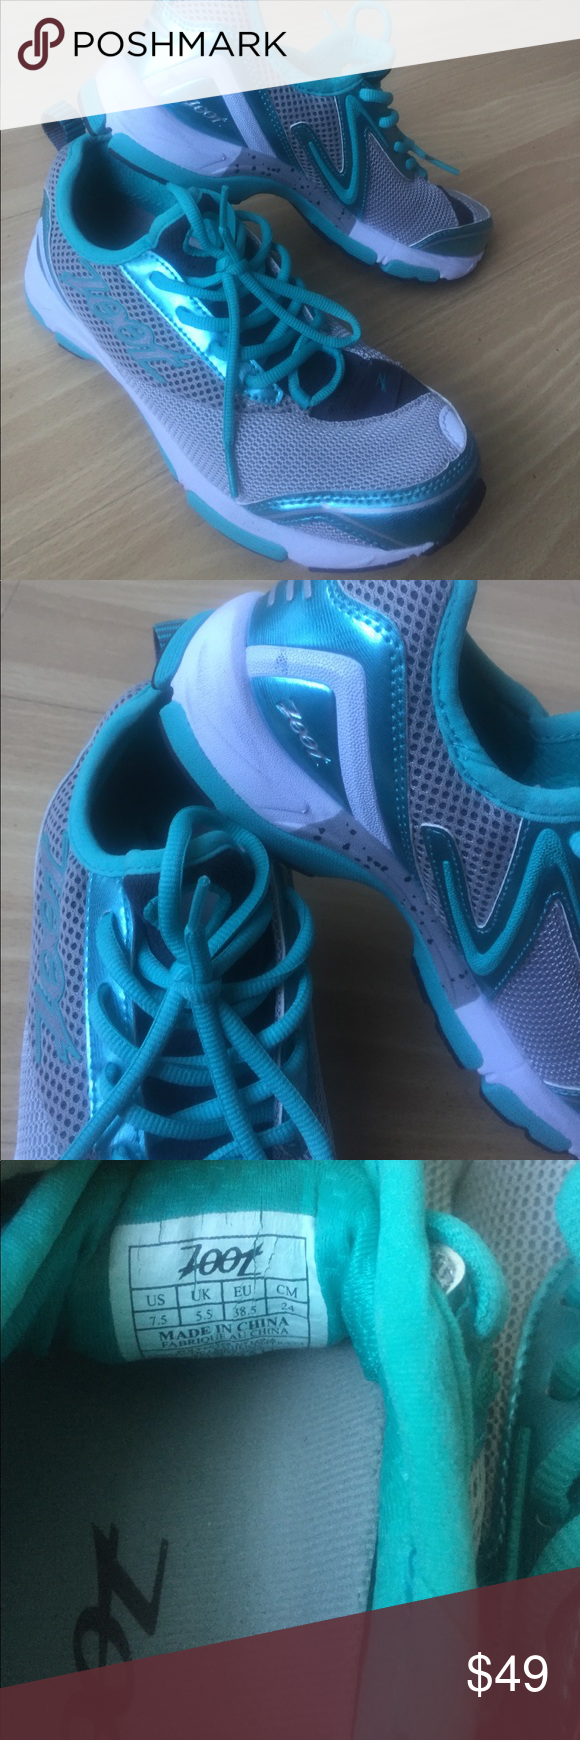 Zoot Kapilani 2.0 running shoes Awesome running sneakers. If you aren't familiar with the zoot brand- get familiar. Amazing compression type of fitness clothing with phenomenal shoes. Cute aqua-turquoise with grey and white. Worn only a handful of times. Zoot Shoes Athletic Shoes